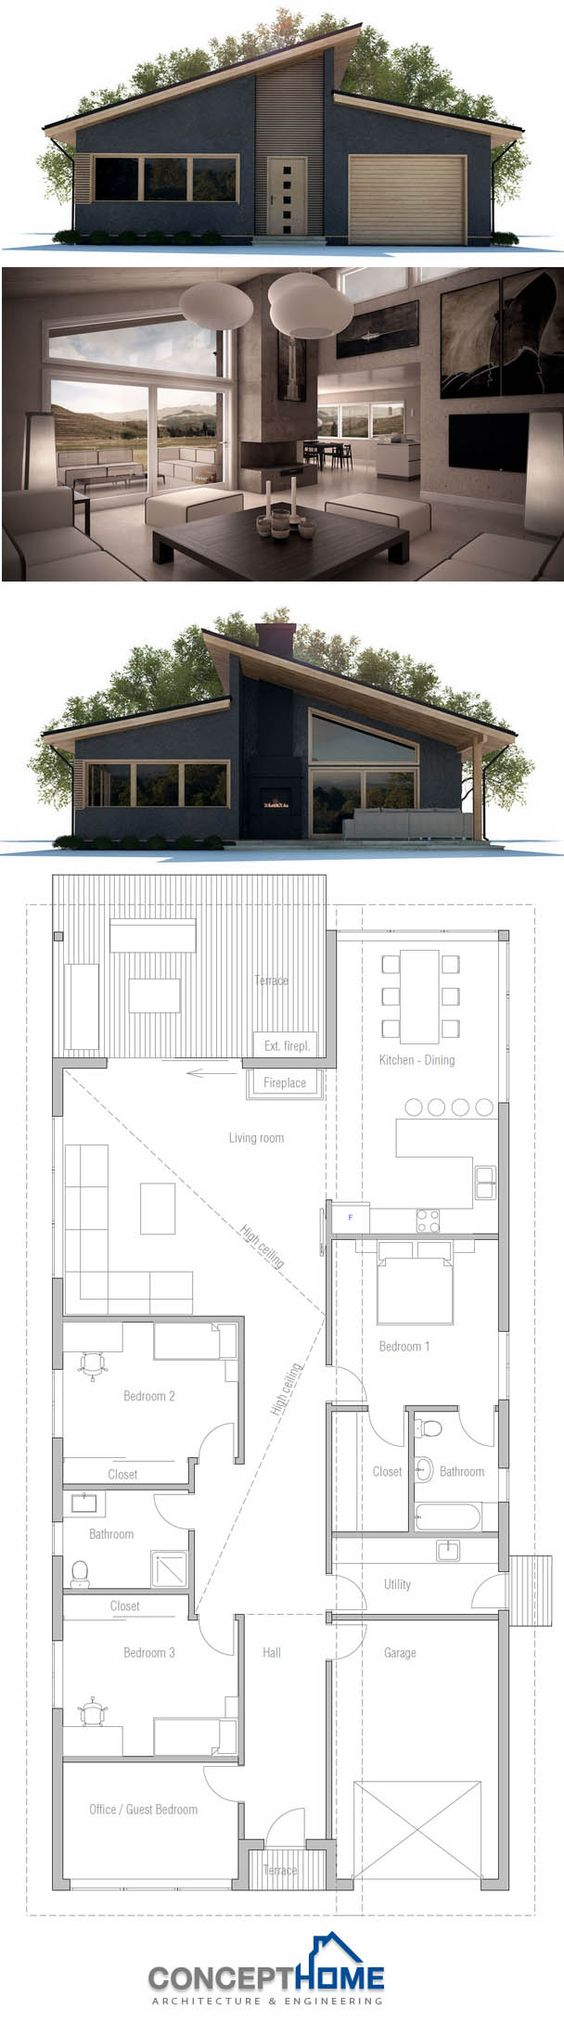 Plan de maison plans de maisons pinterest for Large tiny house plans